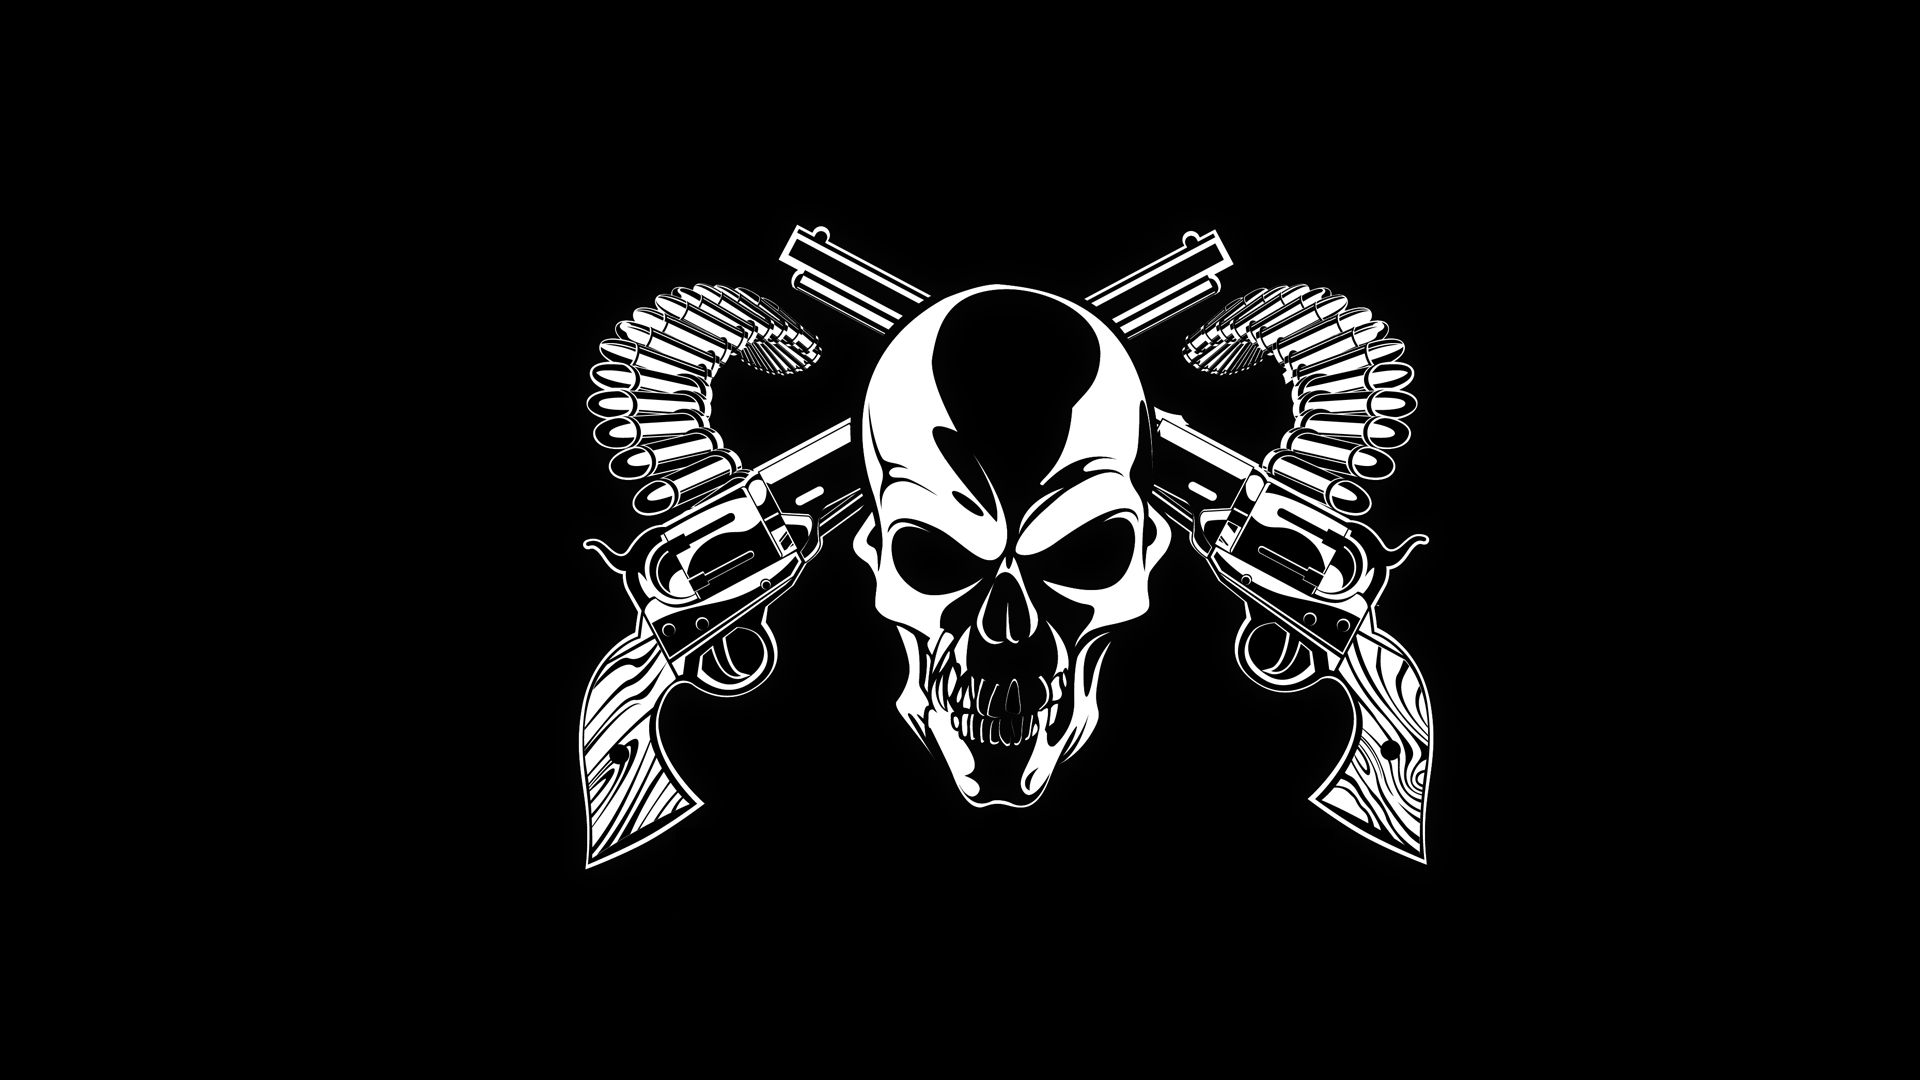 Free Skulls Wallpaper  WallpaperSafari